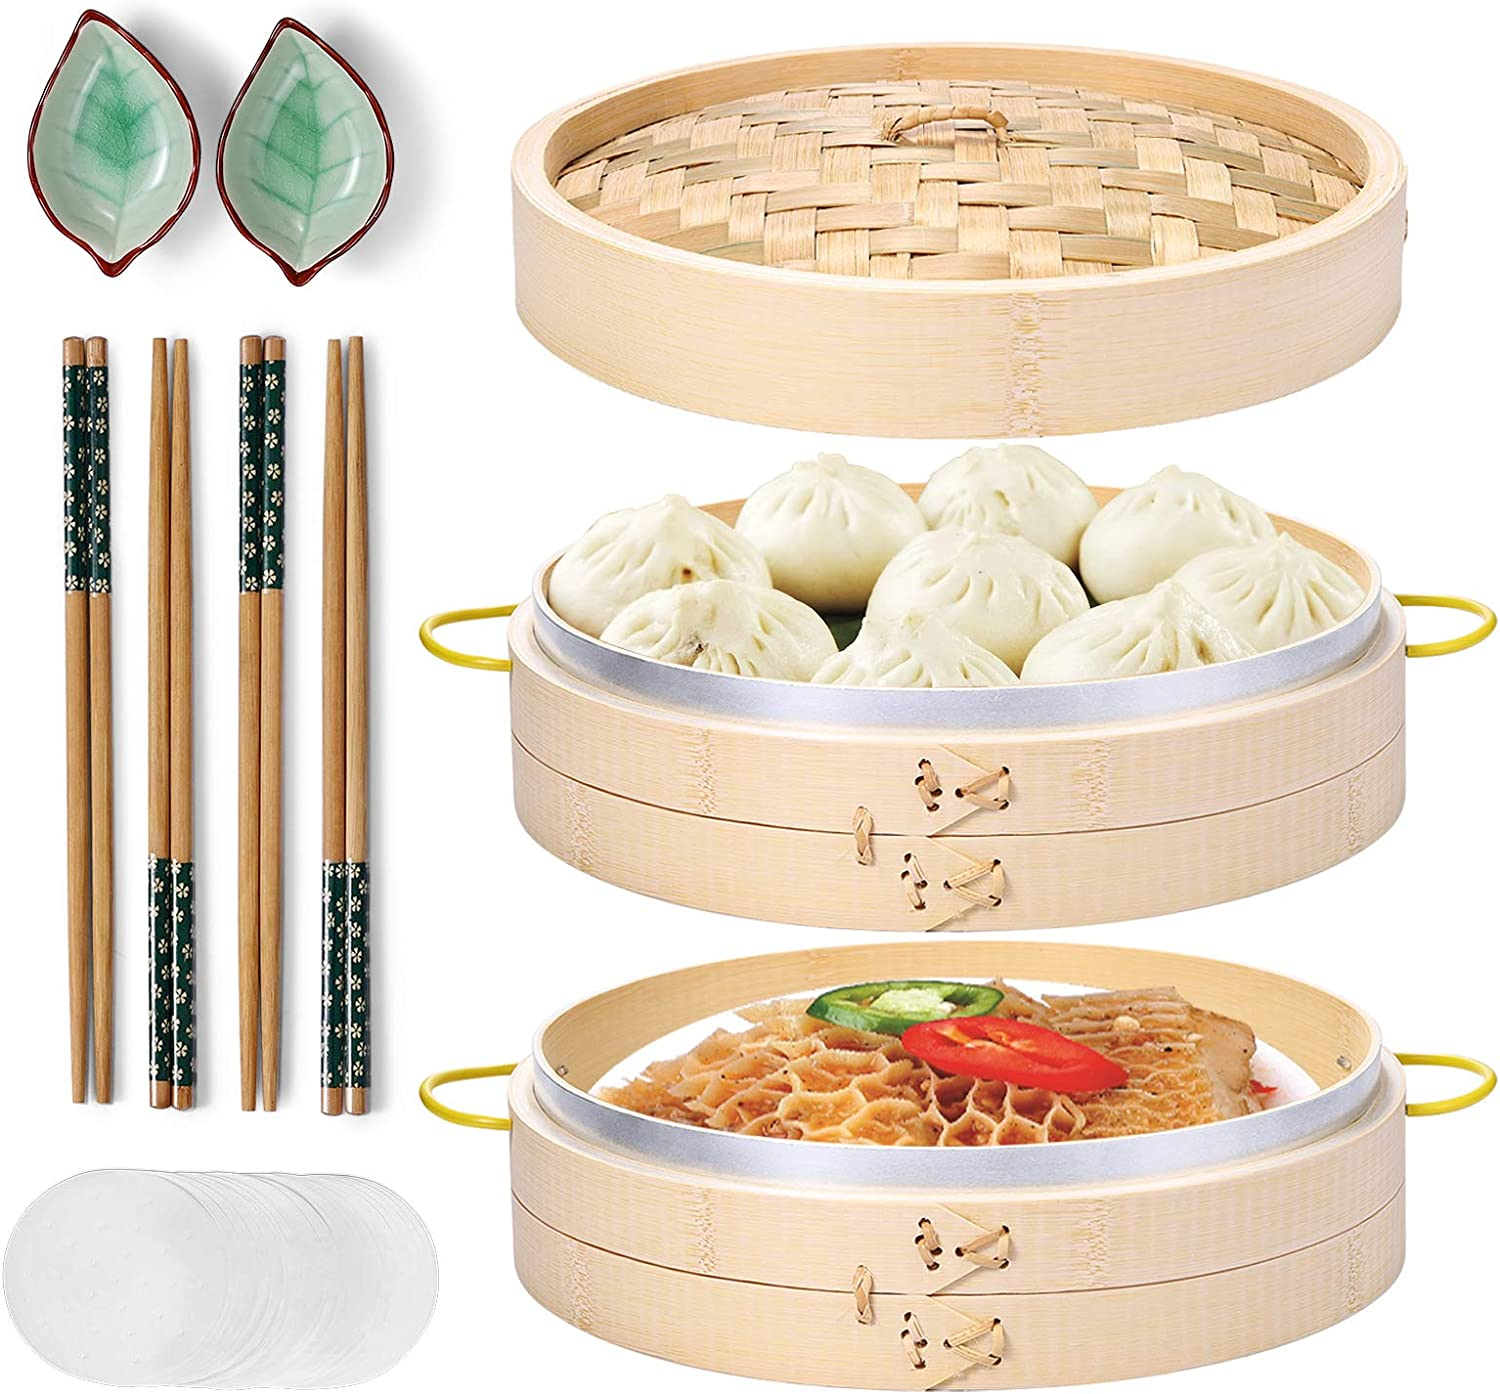 Bamboo Steamer, MacaRio 10 Inch Handmade Baskets with Side Handles & Banding, 4 Sets Chopsticks 2 Ceramic Sauce Dishes 50 Paper Liners, Healthy Cooking for Dim Sum Dumplings, Buns, Seafoods: Kitchen & Dining